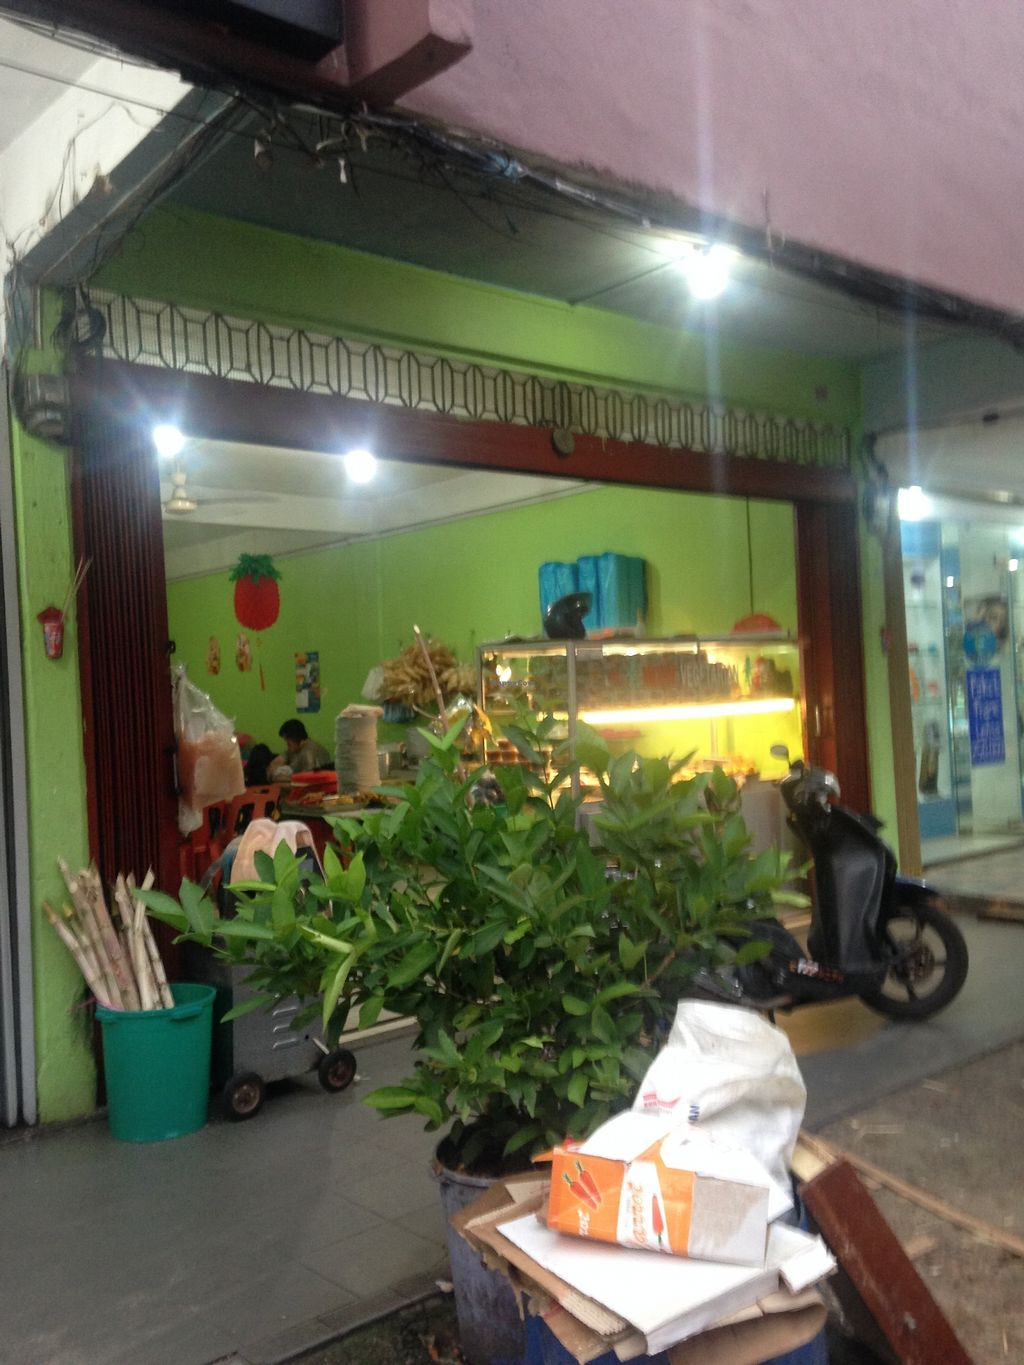 "Photo of Moon Vegetarian  by <a href=""/members/profile/harryang"">harryang</a> <br/>Outside  <br/> January 25, 2018  - <a href='/contact/abuse/image/11833/350783'>Report</a>"